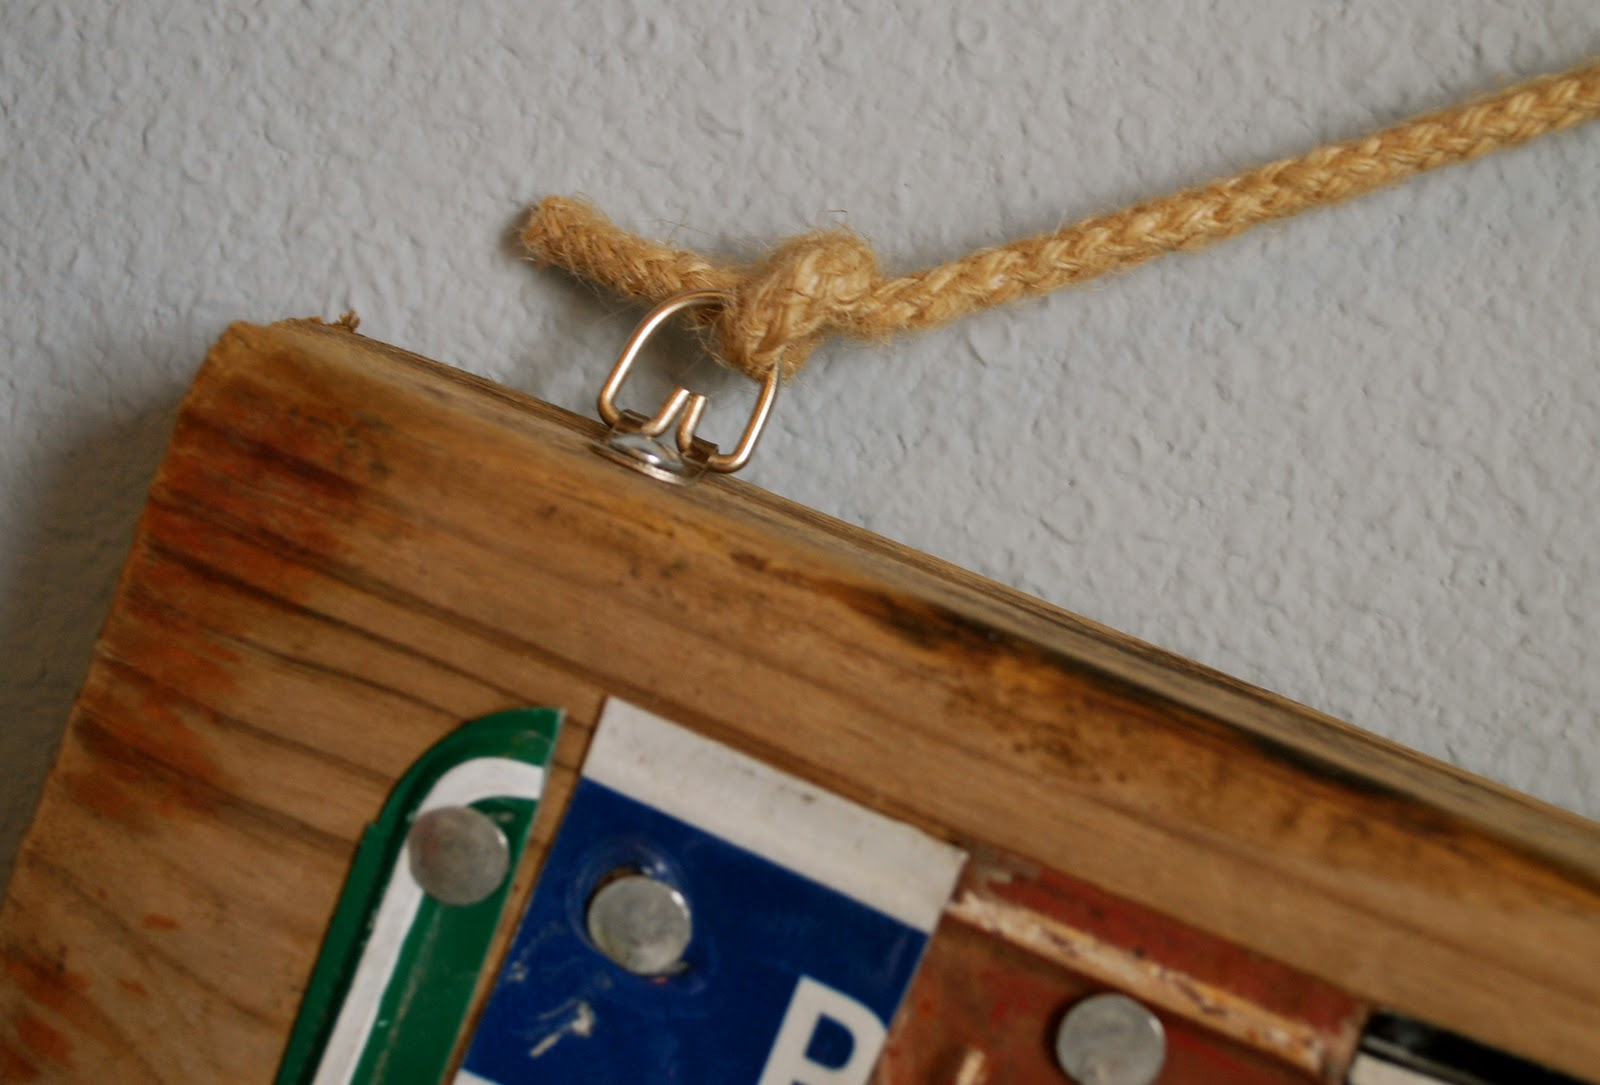 How to tie hang rope